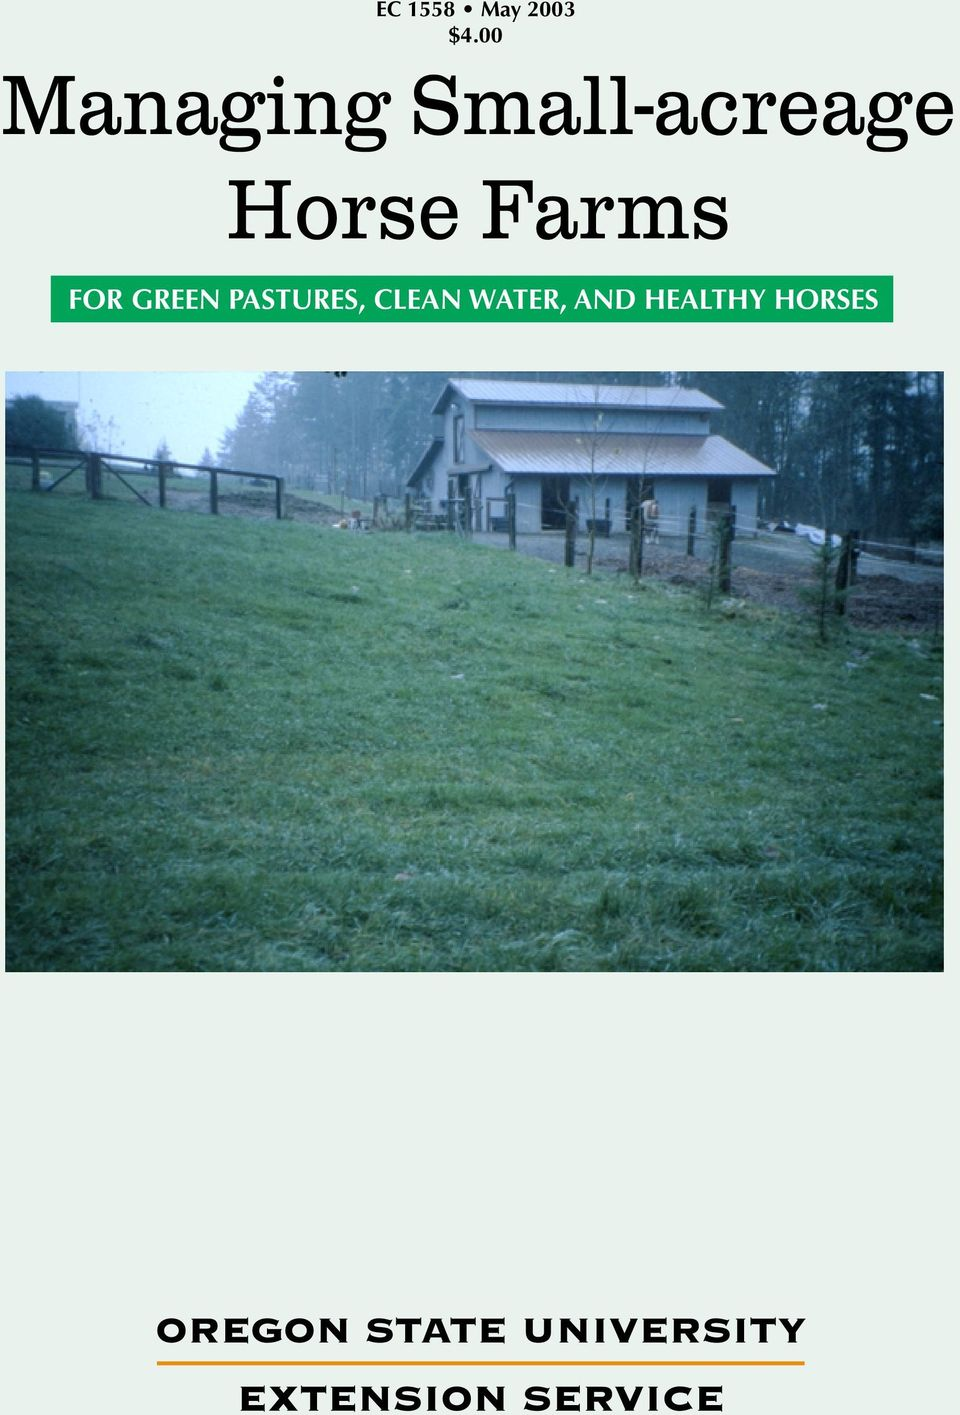 Horse Farms FOR GREEN